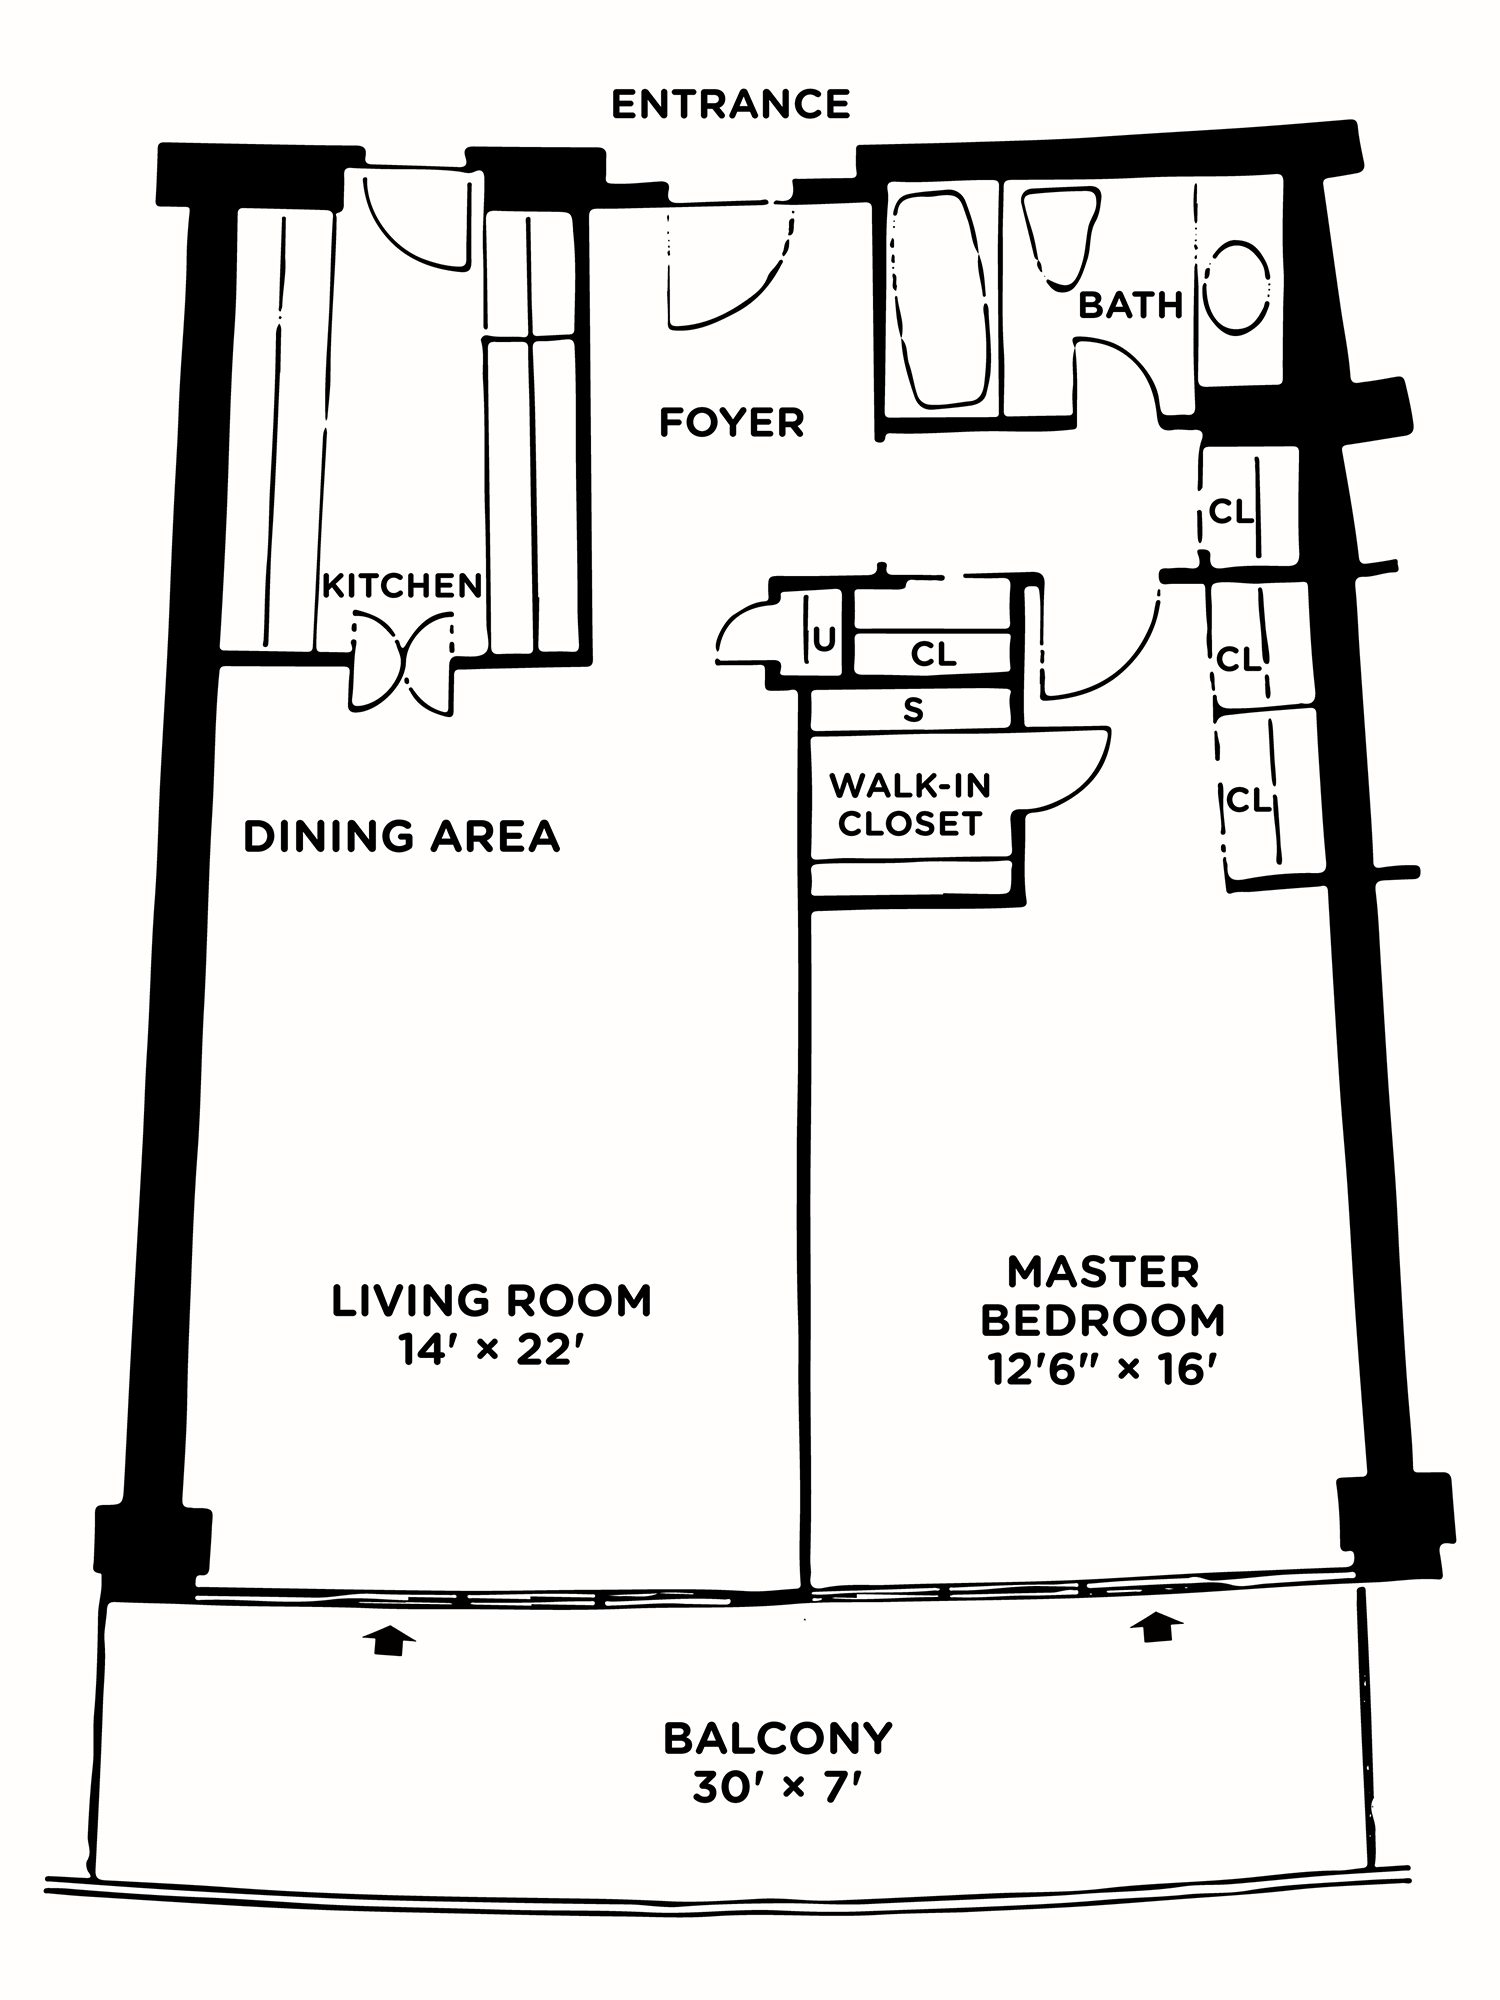 19-612 Floor Plan.png